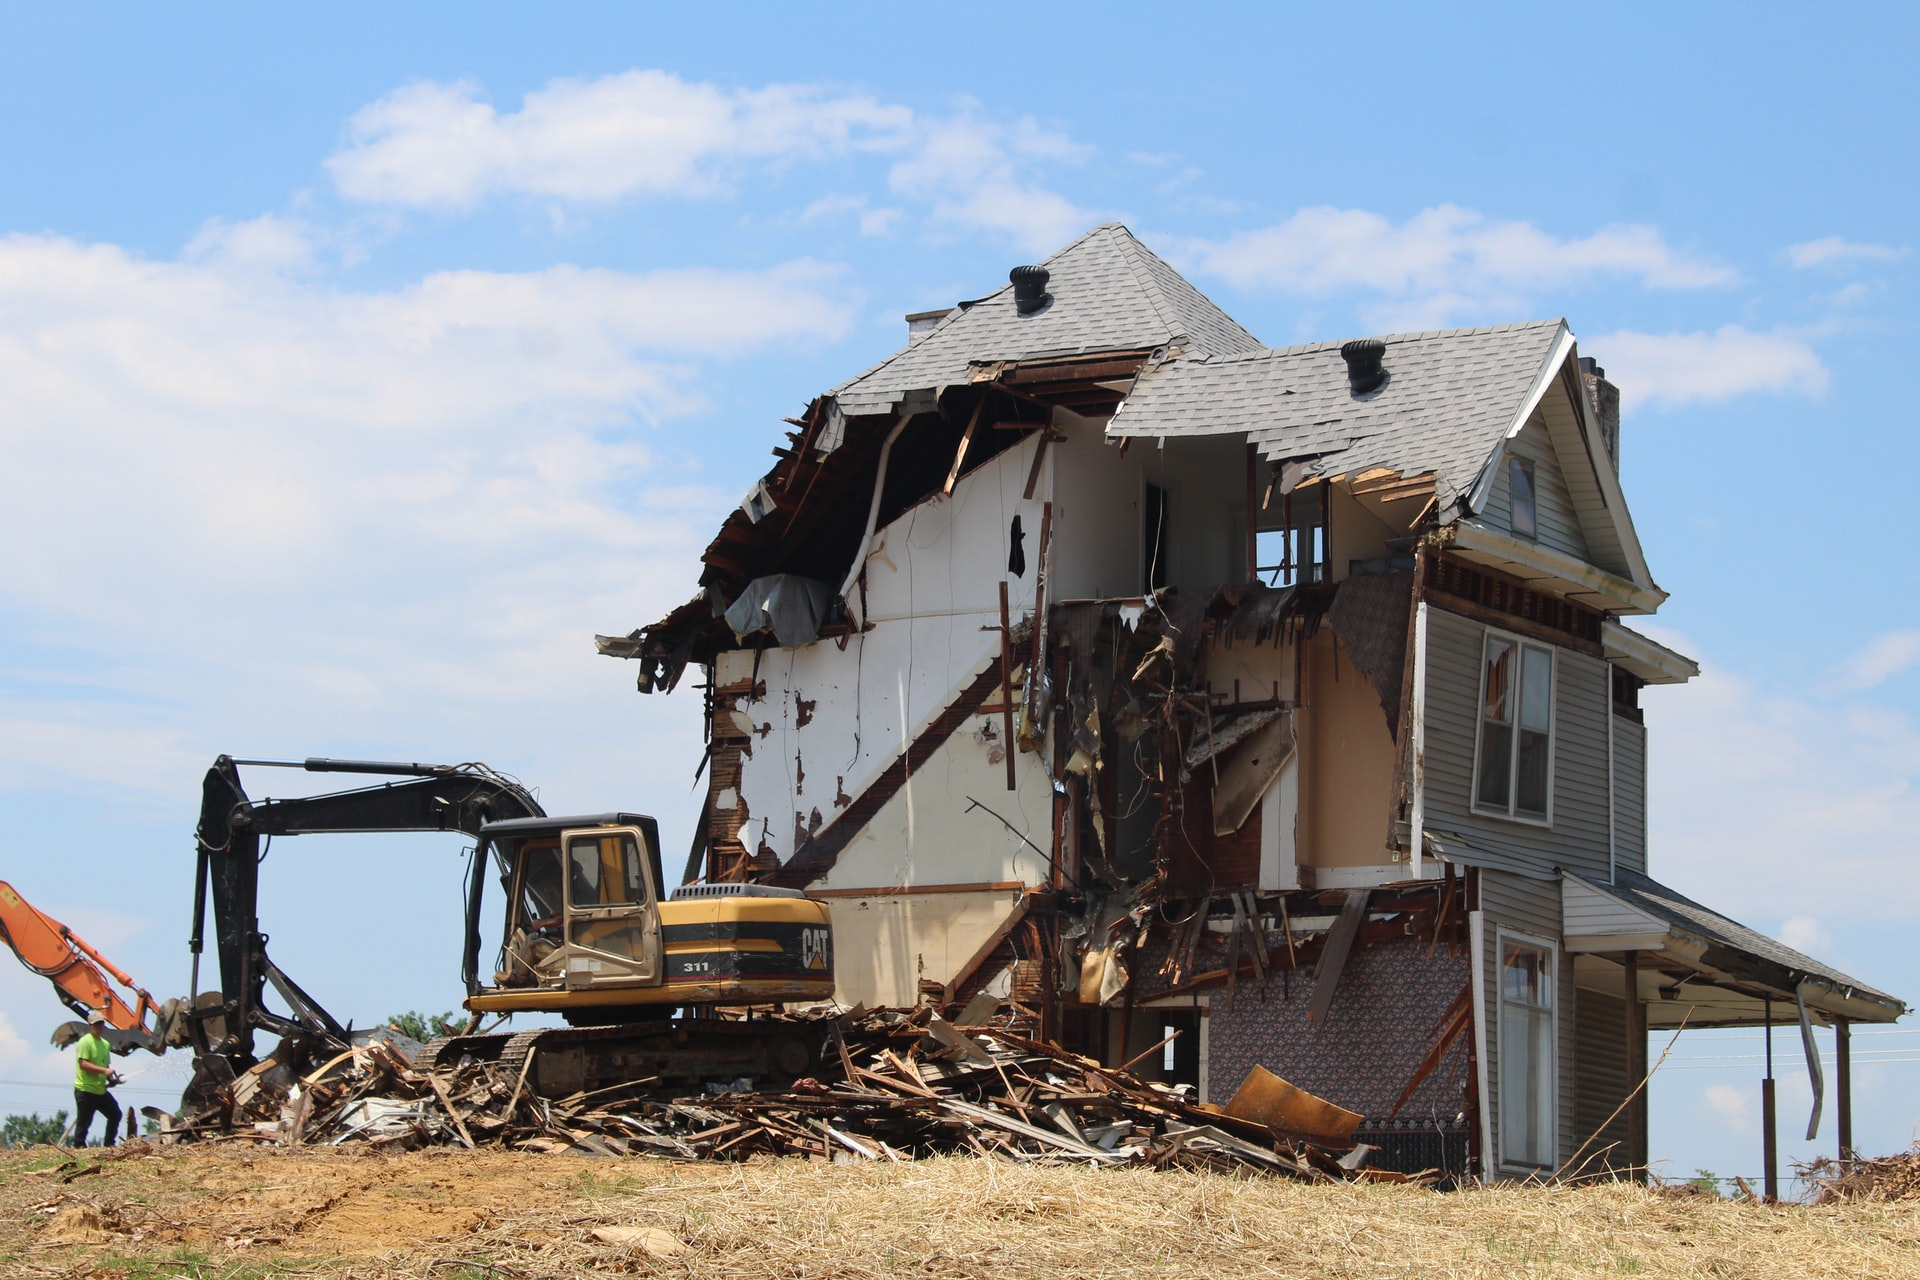 Photo of a house being demolished